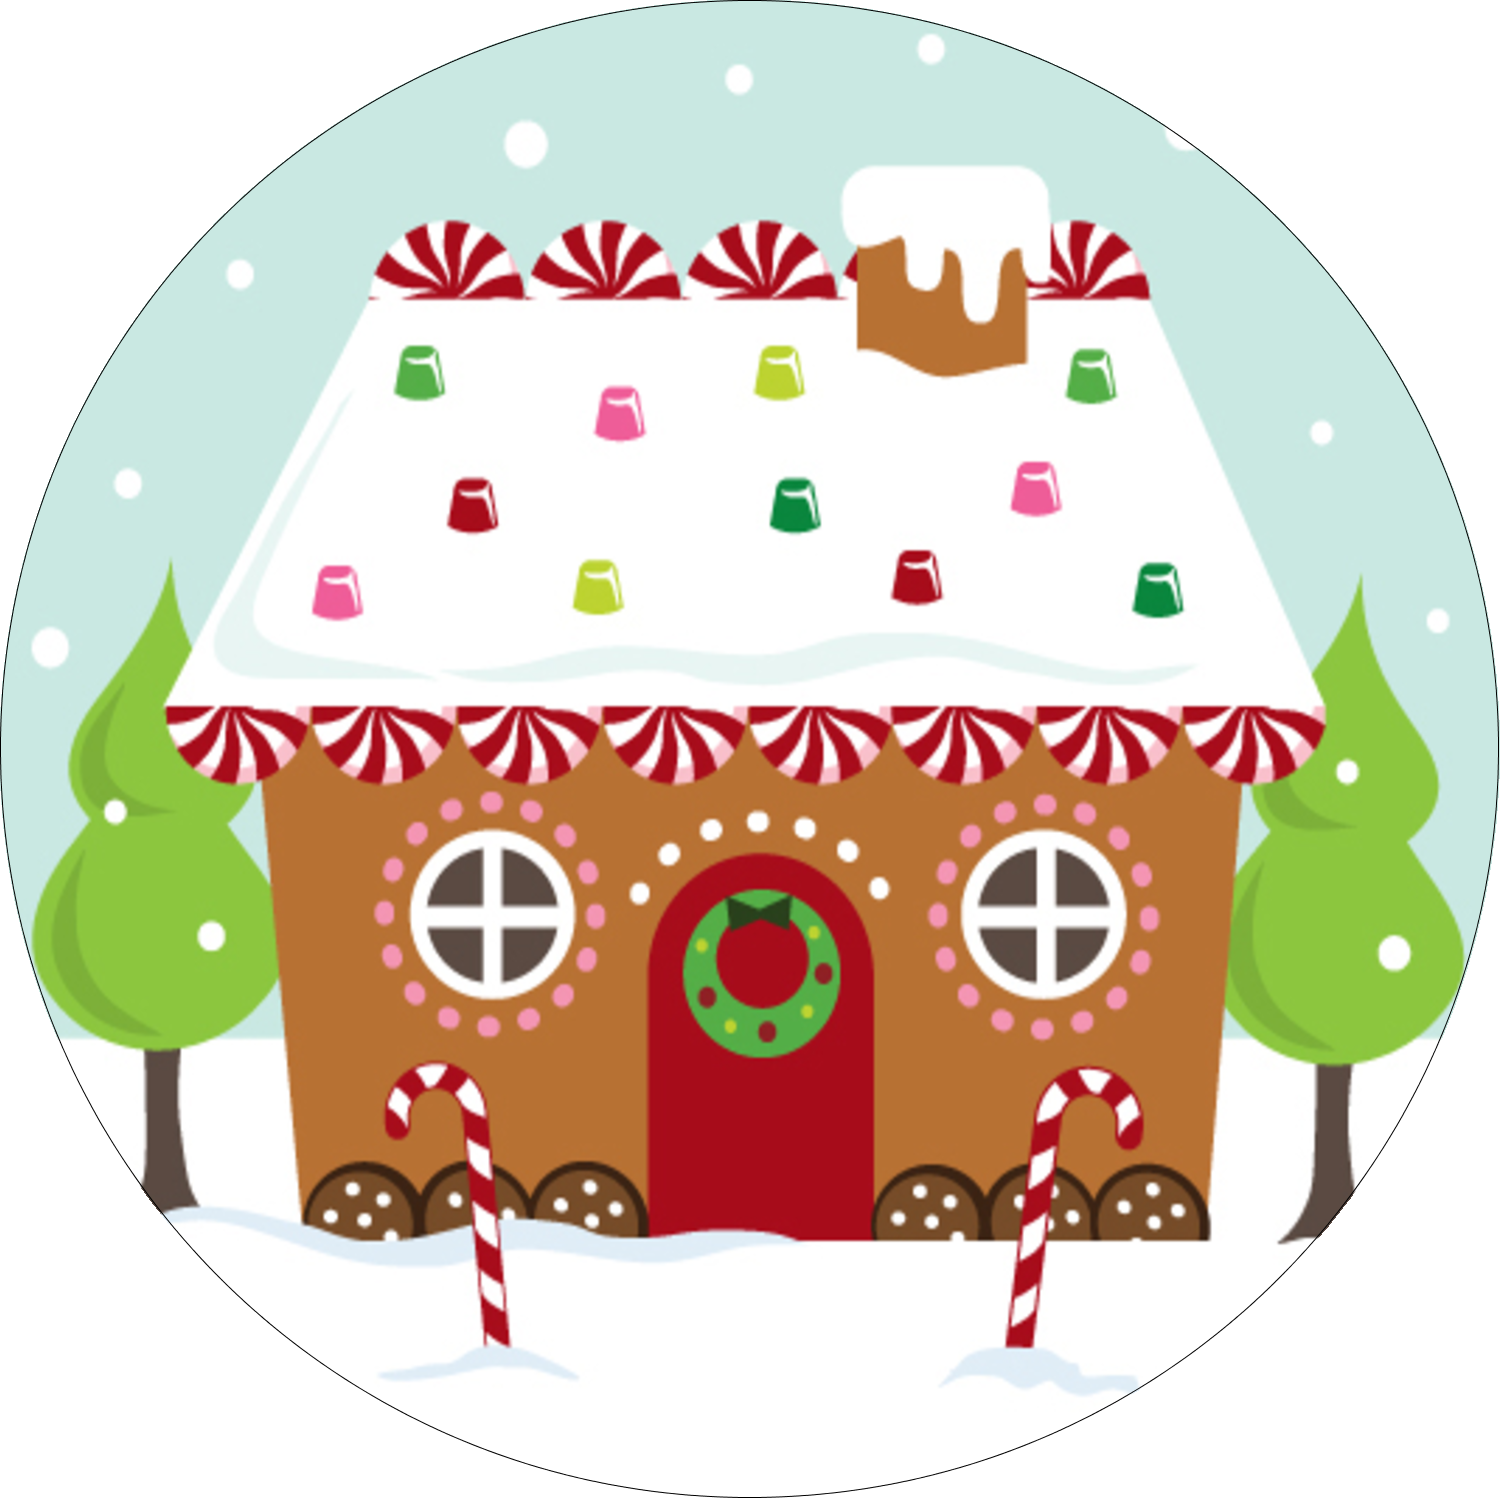 Gingerbread house icing template clipart vector free stock Christmas Round Labels - Pre Designed Templates vector free stock